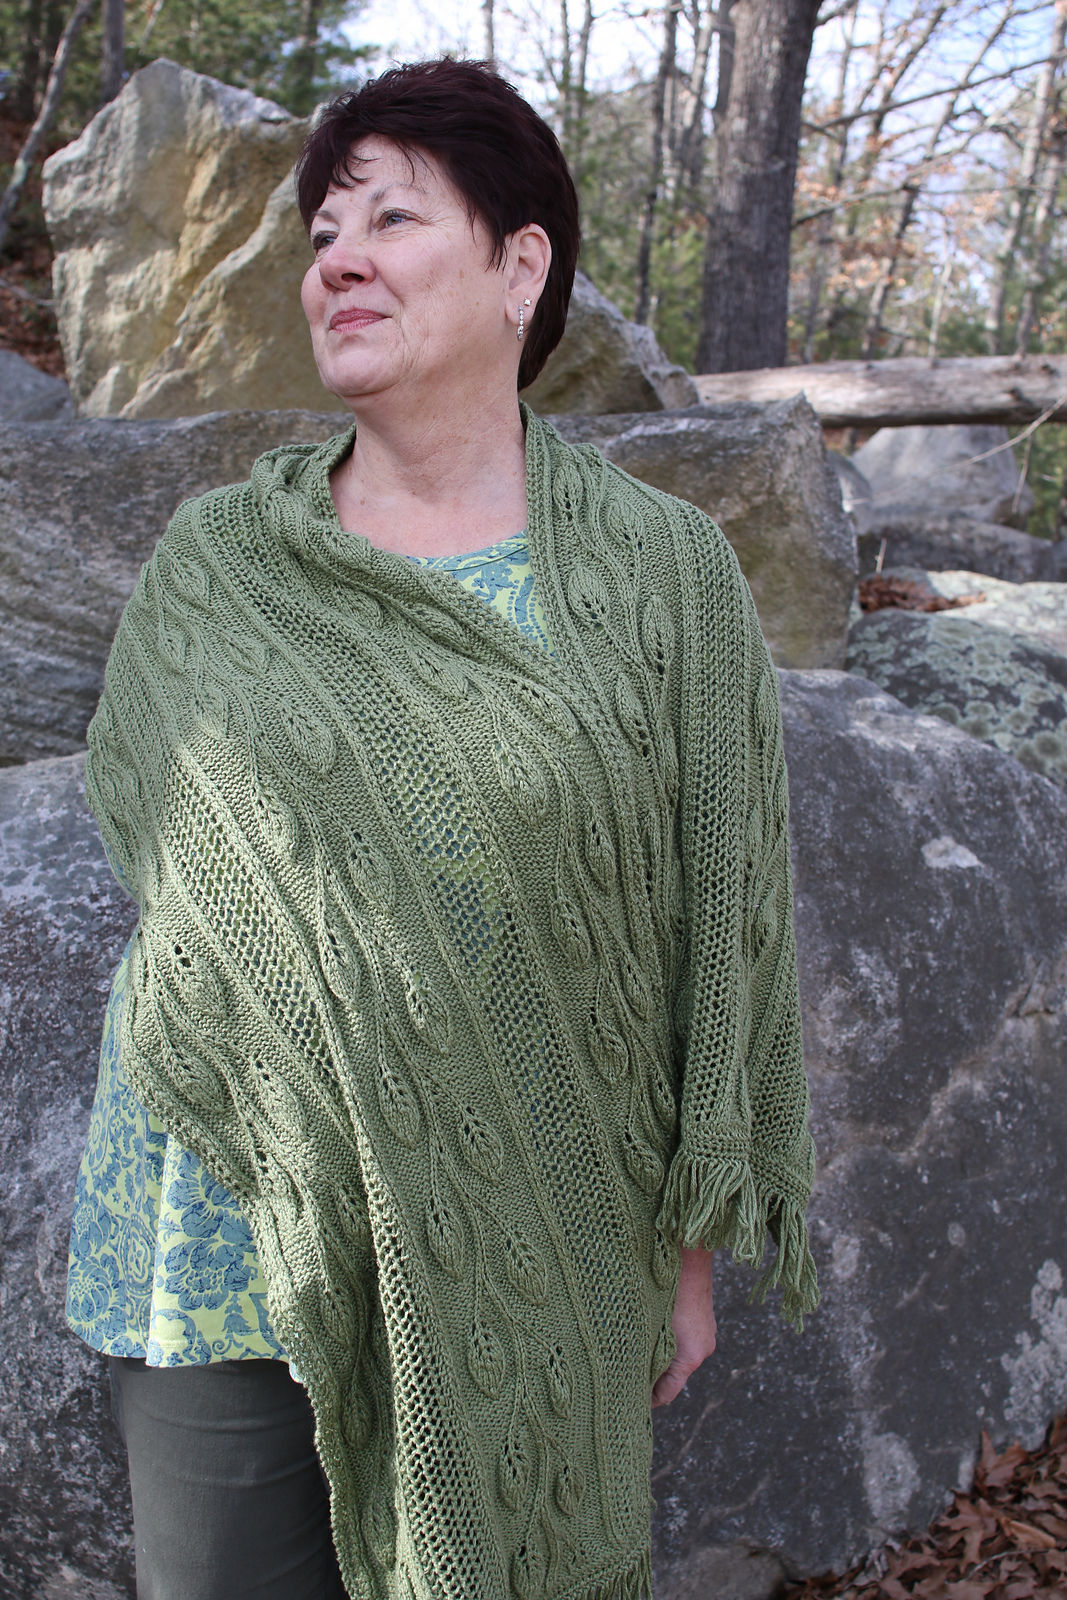 Women's shawl Finally Spring. Free knitting pattern (lace). 2